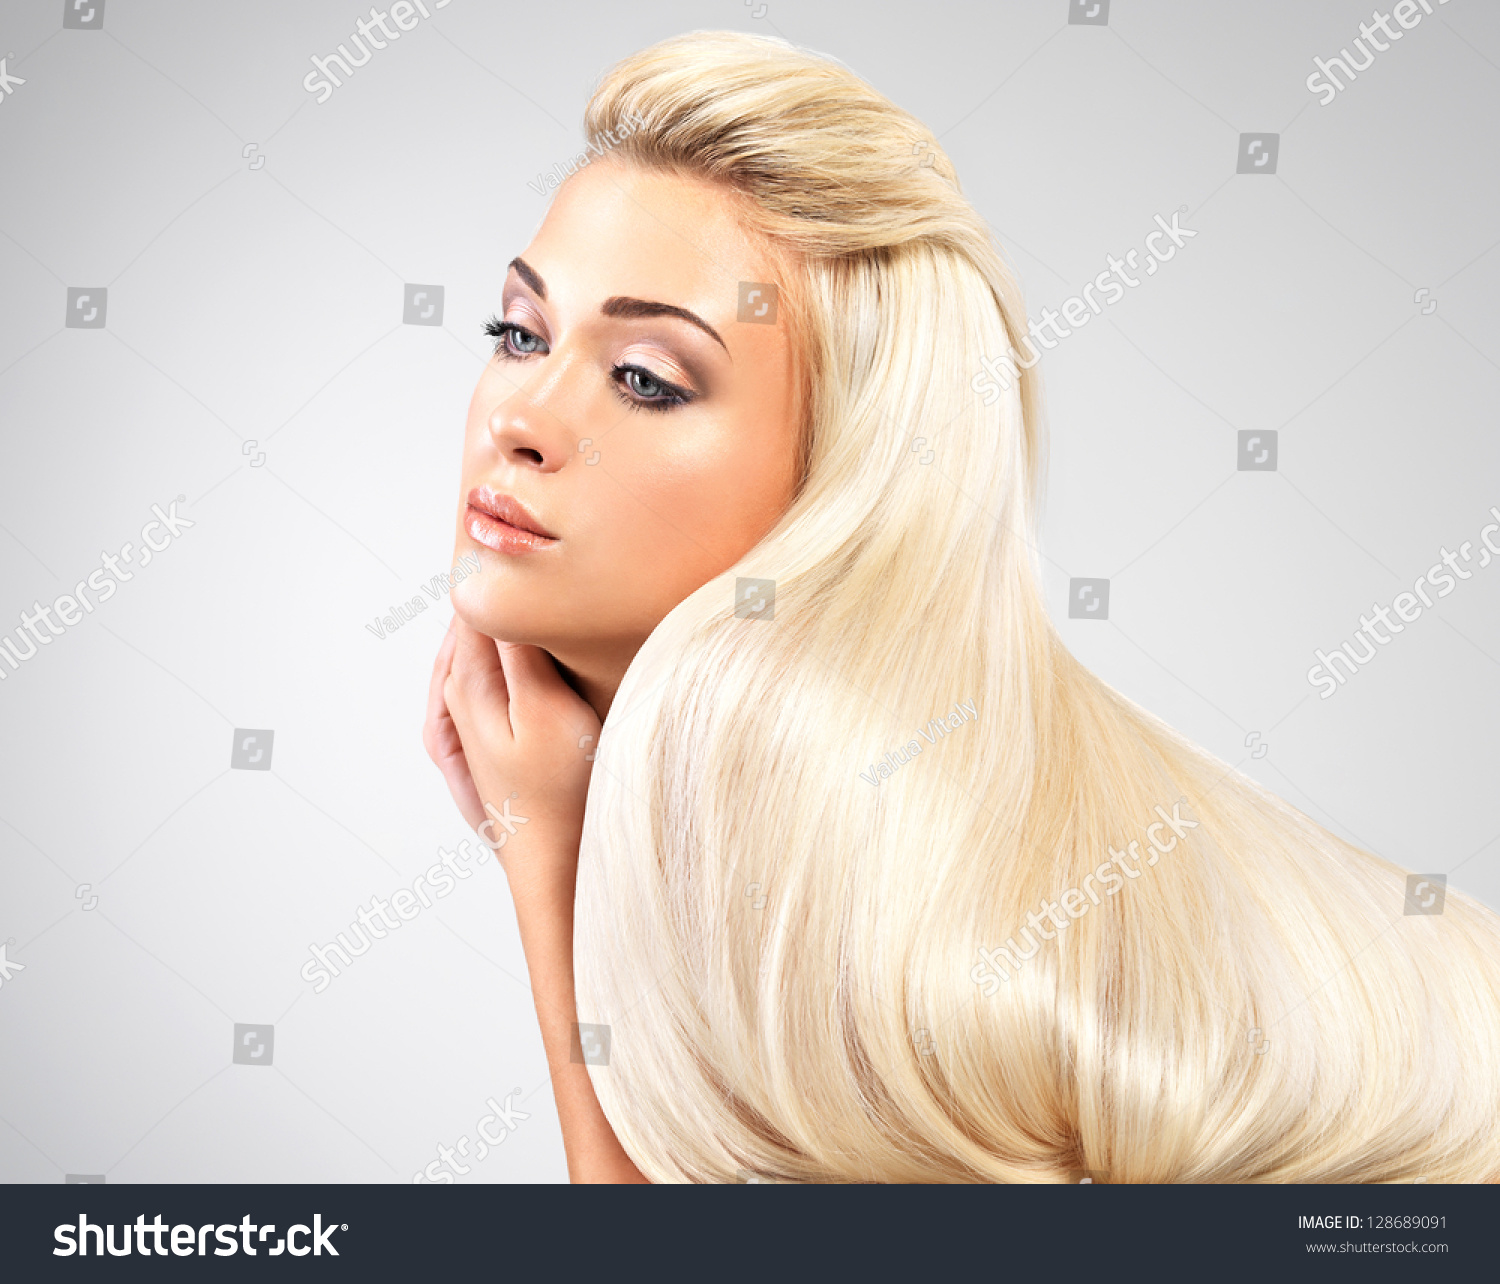 Beautiful Woman With Long Straight Blond Hair. Fashion